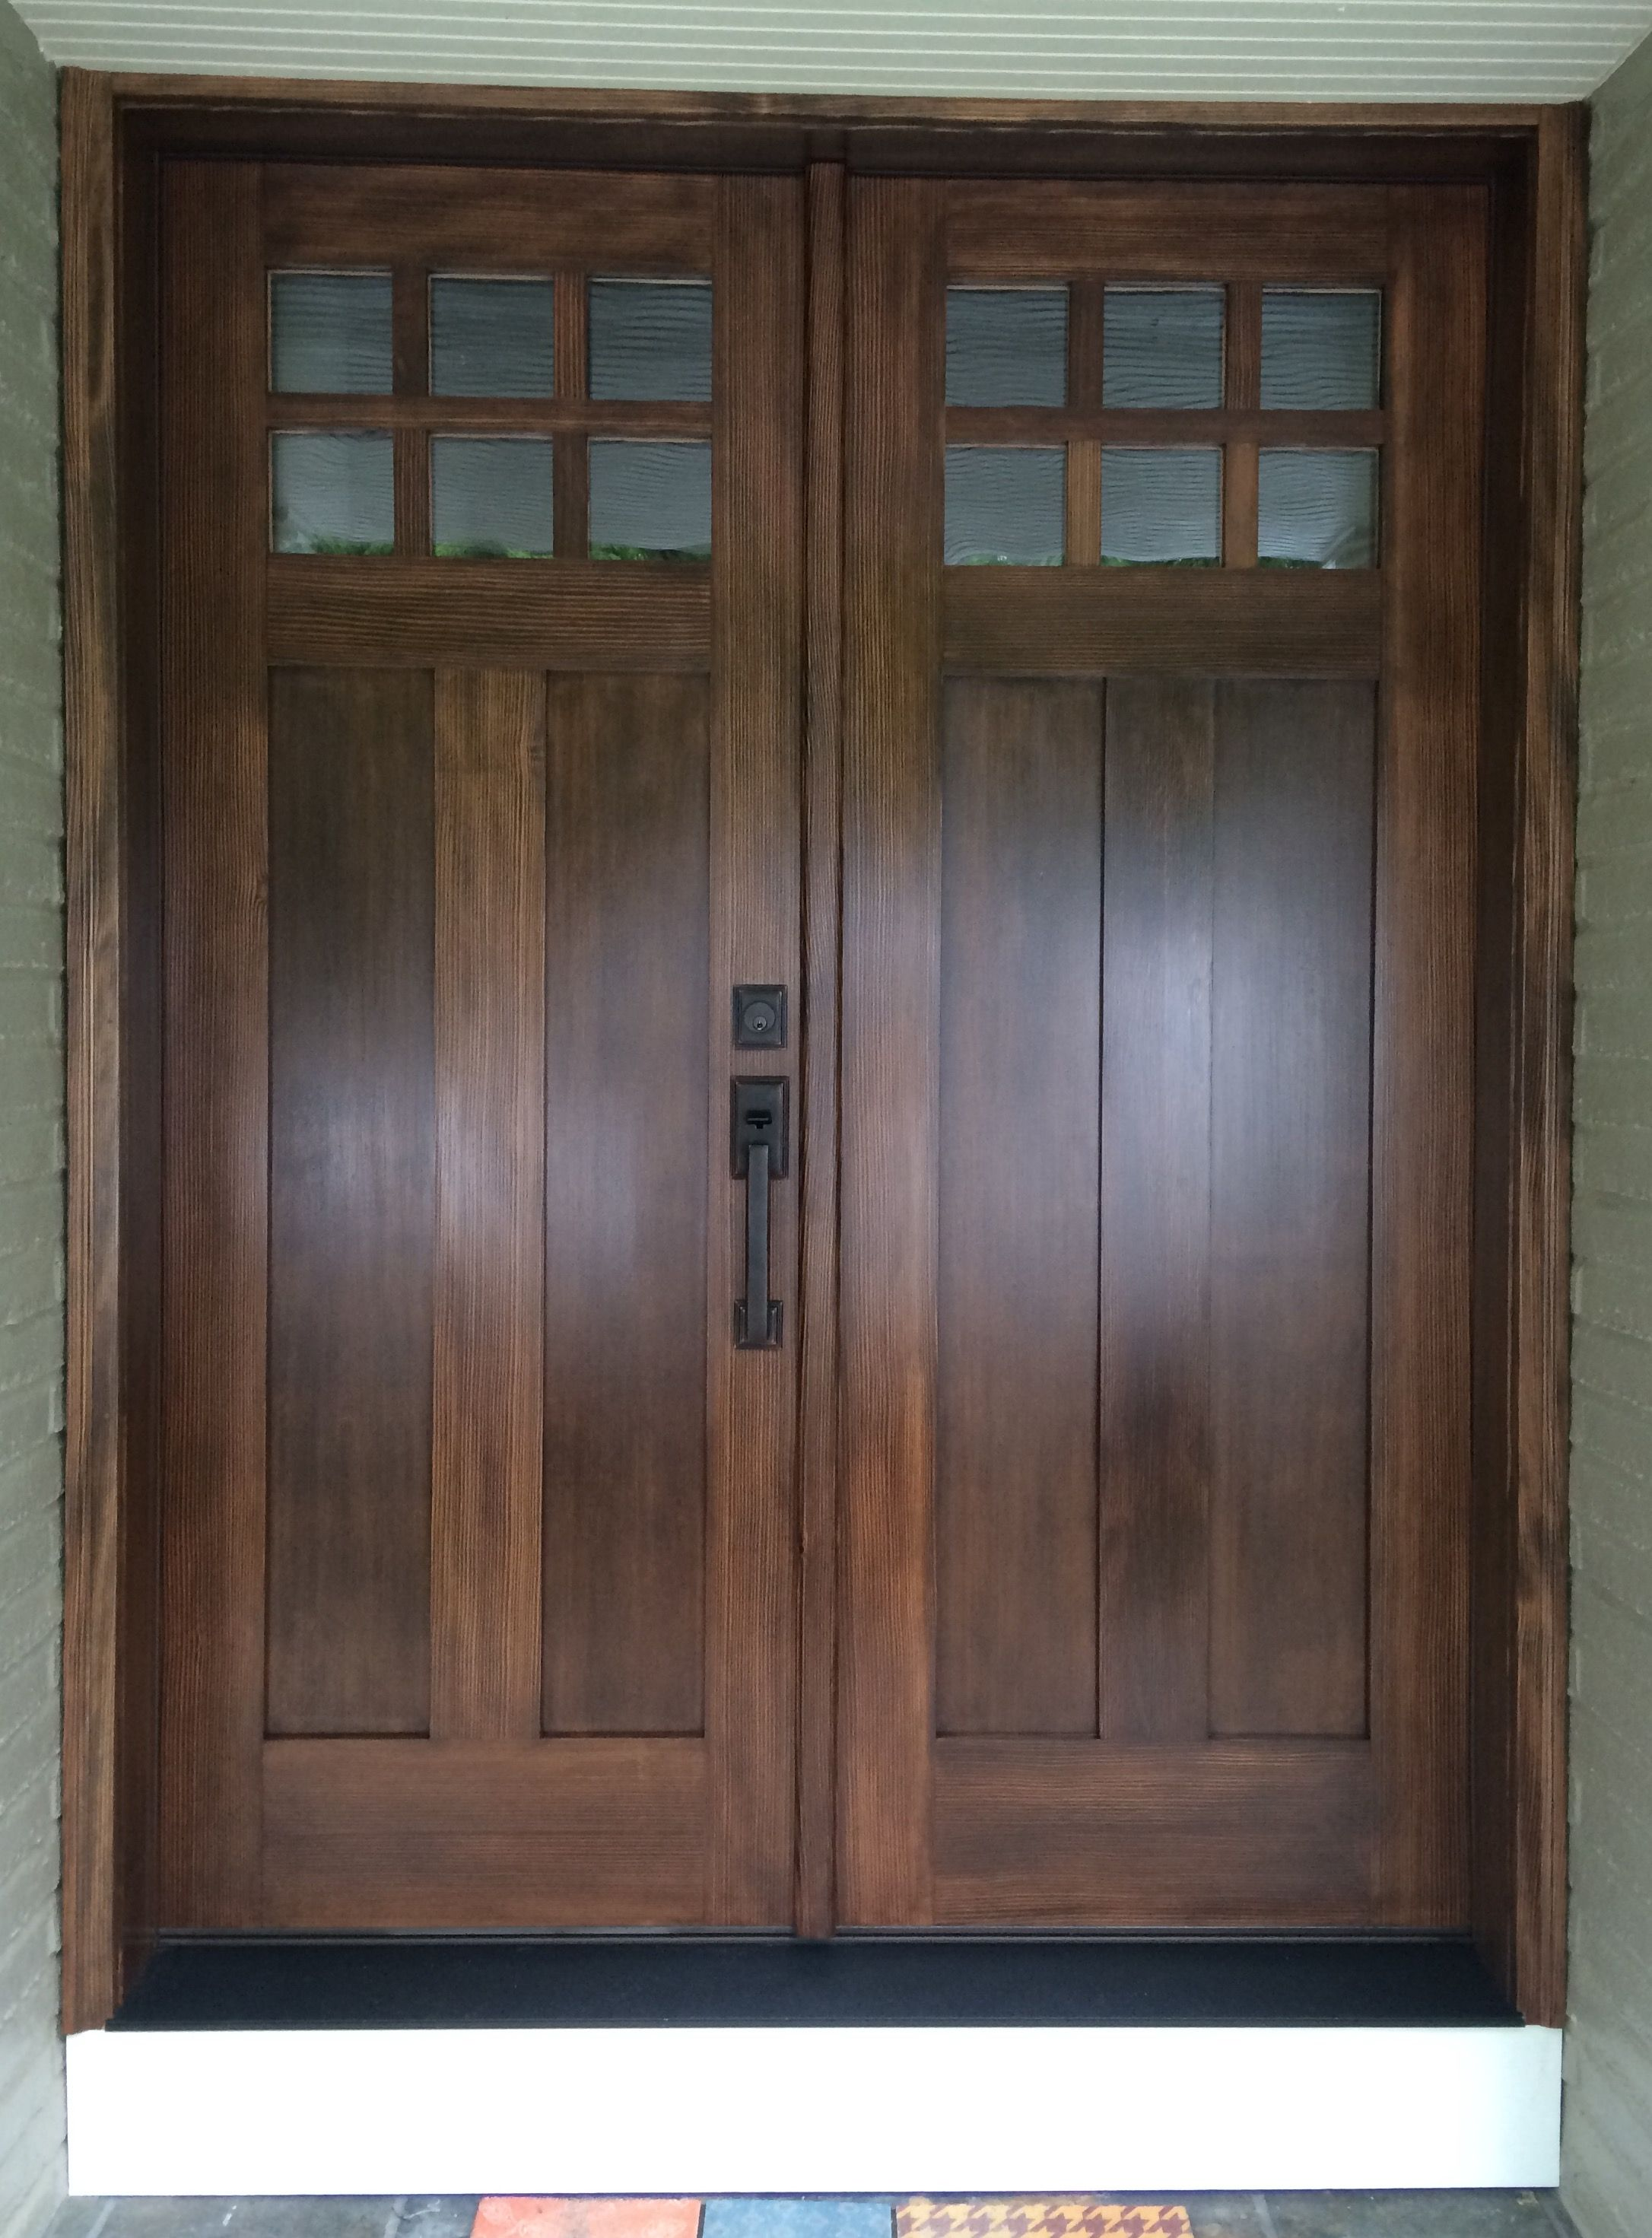 Douglas Fir Entry Door Stained And Finished Wood Doors Stained